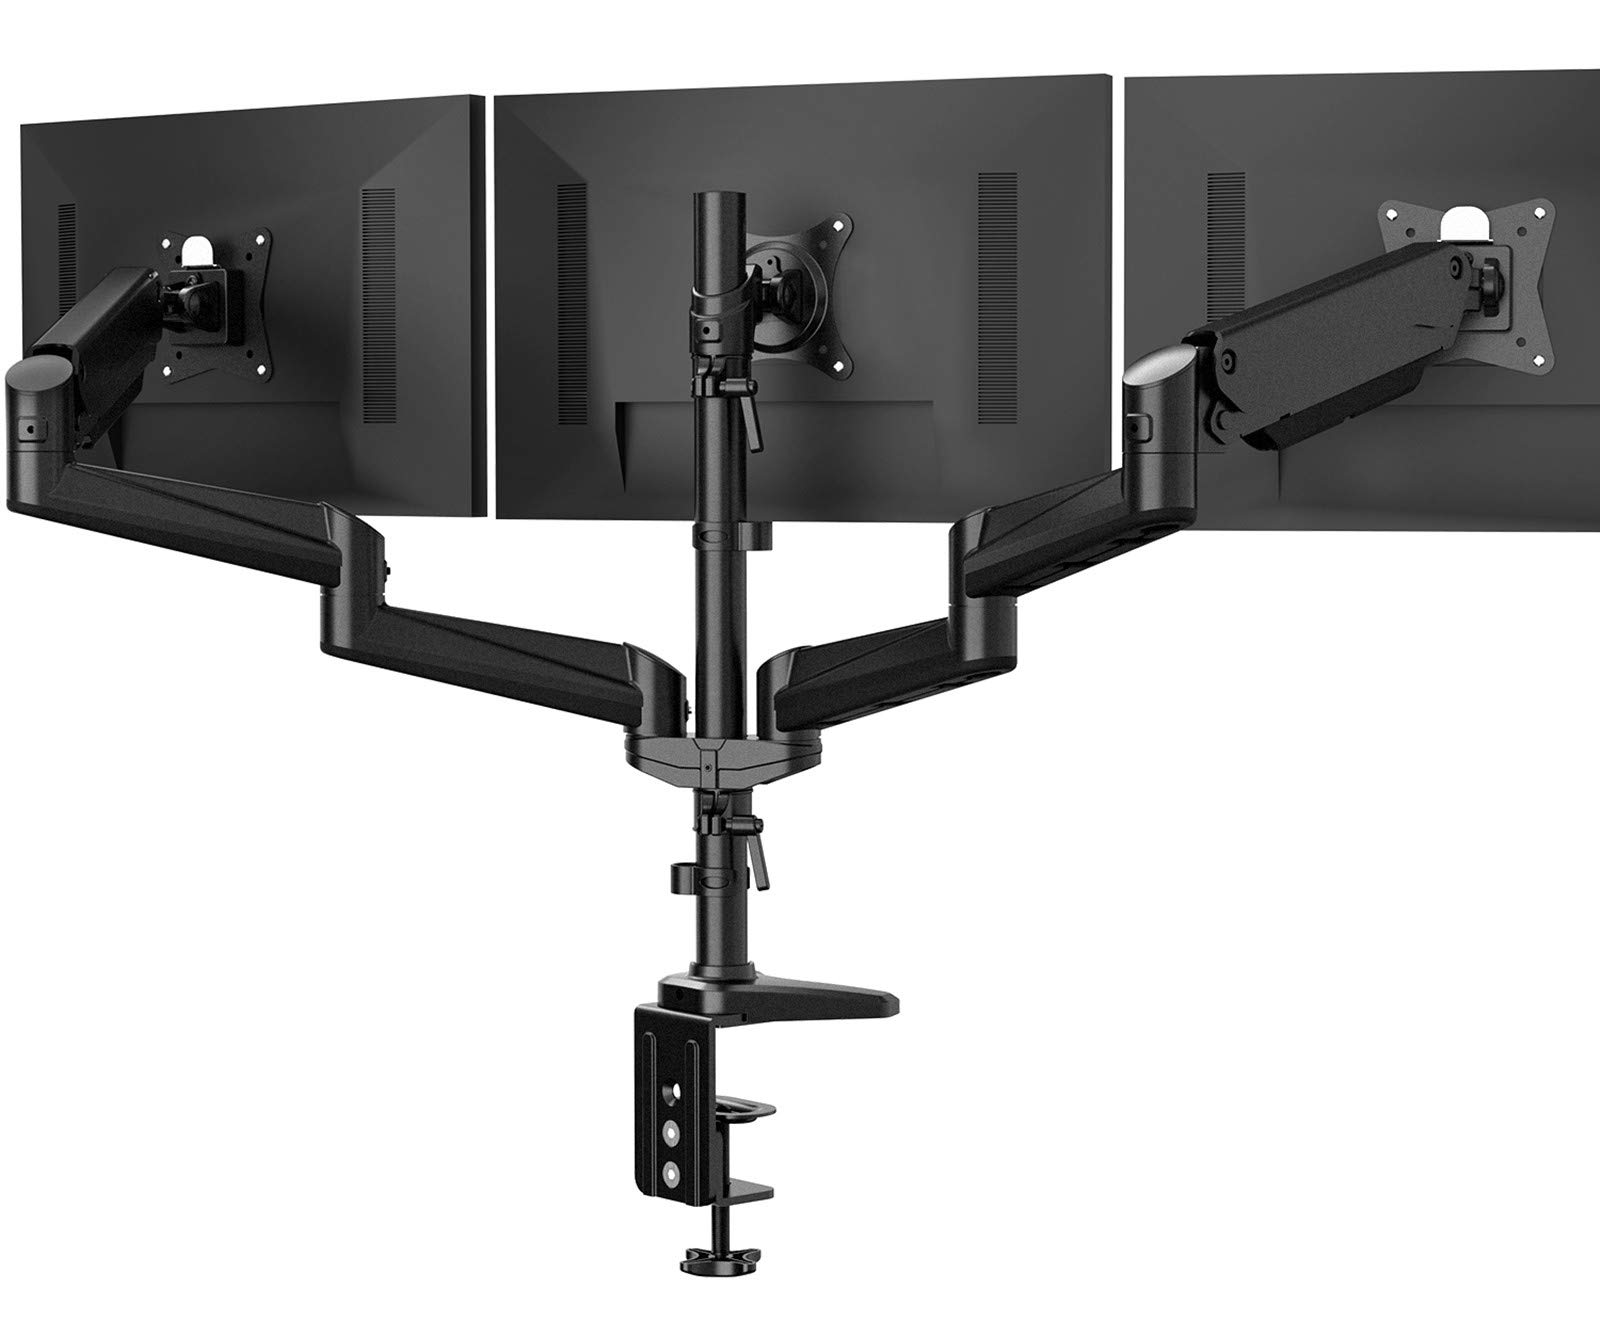 Triple Monitor Stand - Full Motion Articulating Aluminum Gas Spring Monitor Mount Fits Three 17 to 32 inch Flat/Curved LCD Computer Screens with Clamp, Grommet Kit, Black